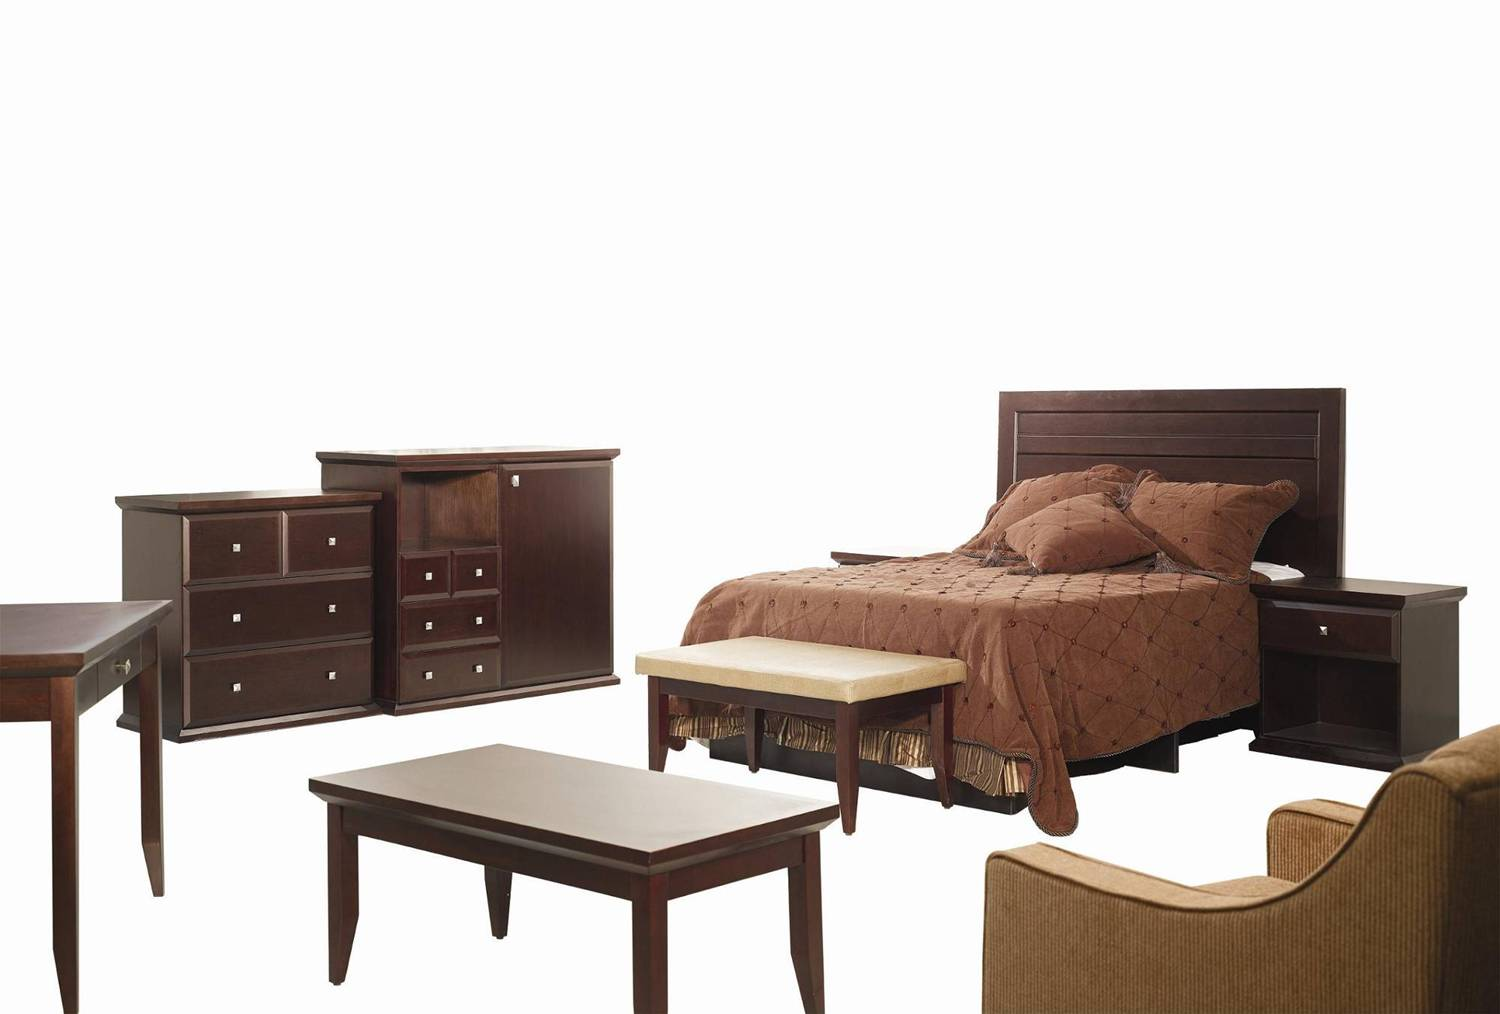 Hotel furniture hospitality furniture manufacturer for Hotel furniture